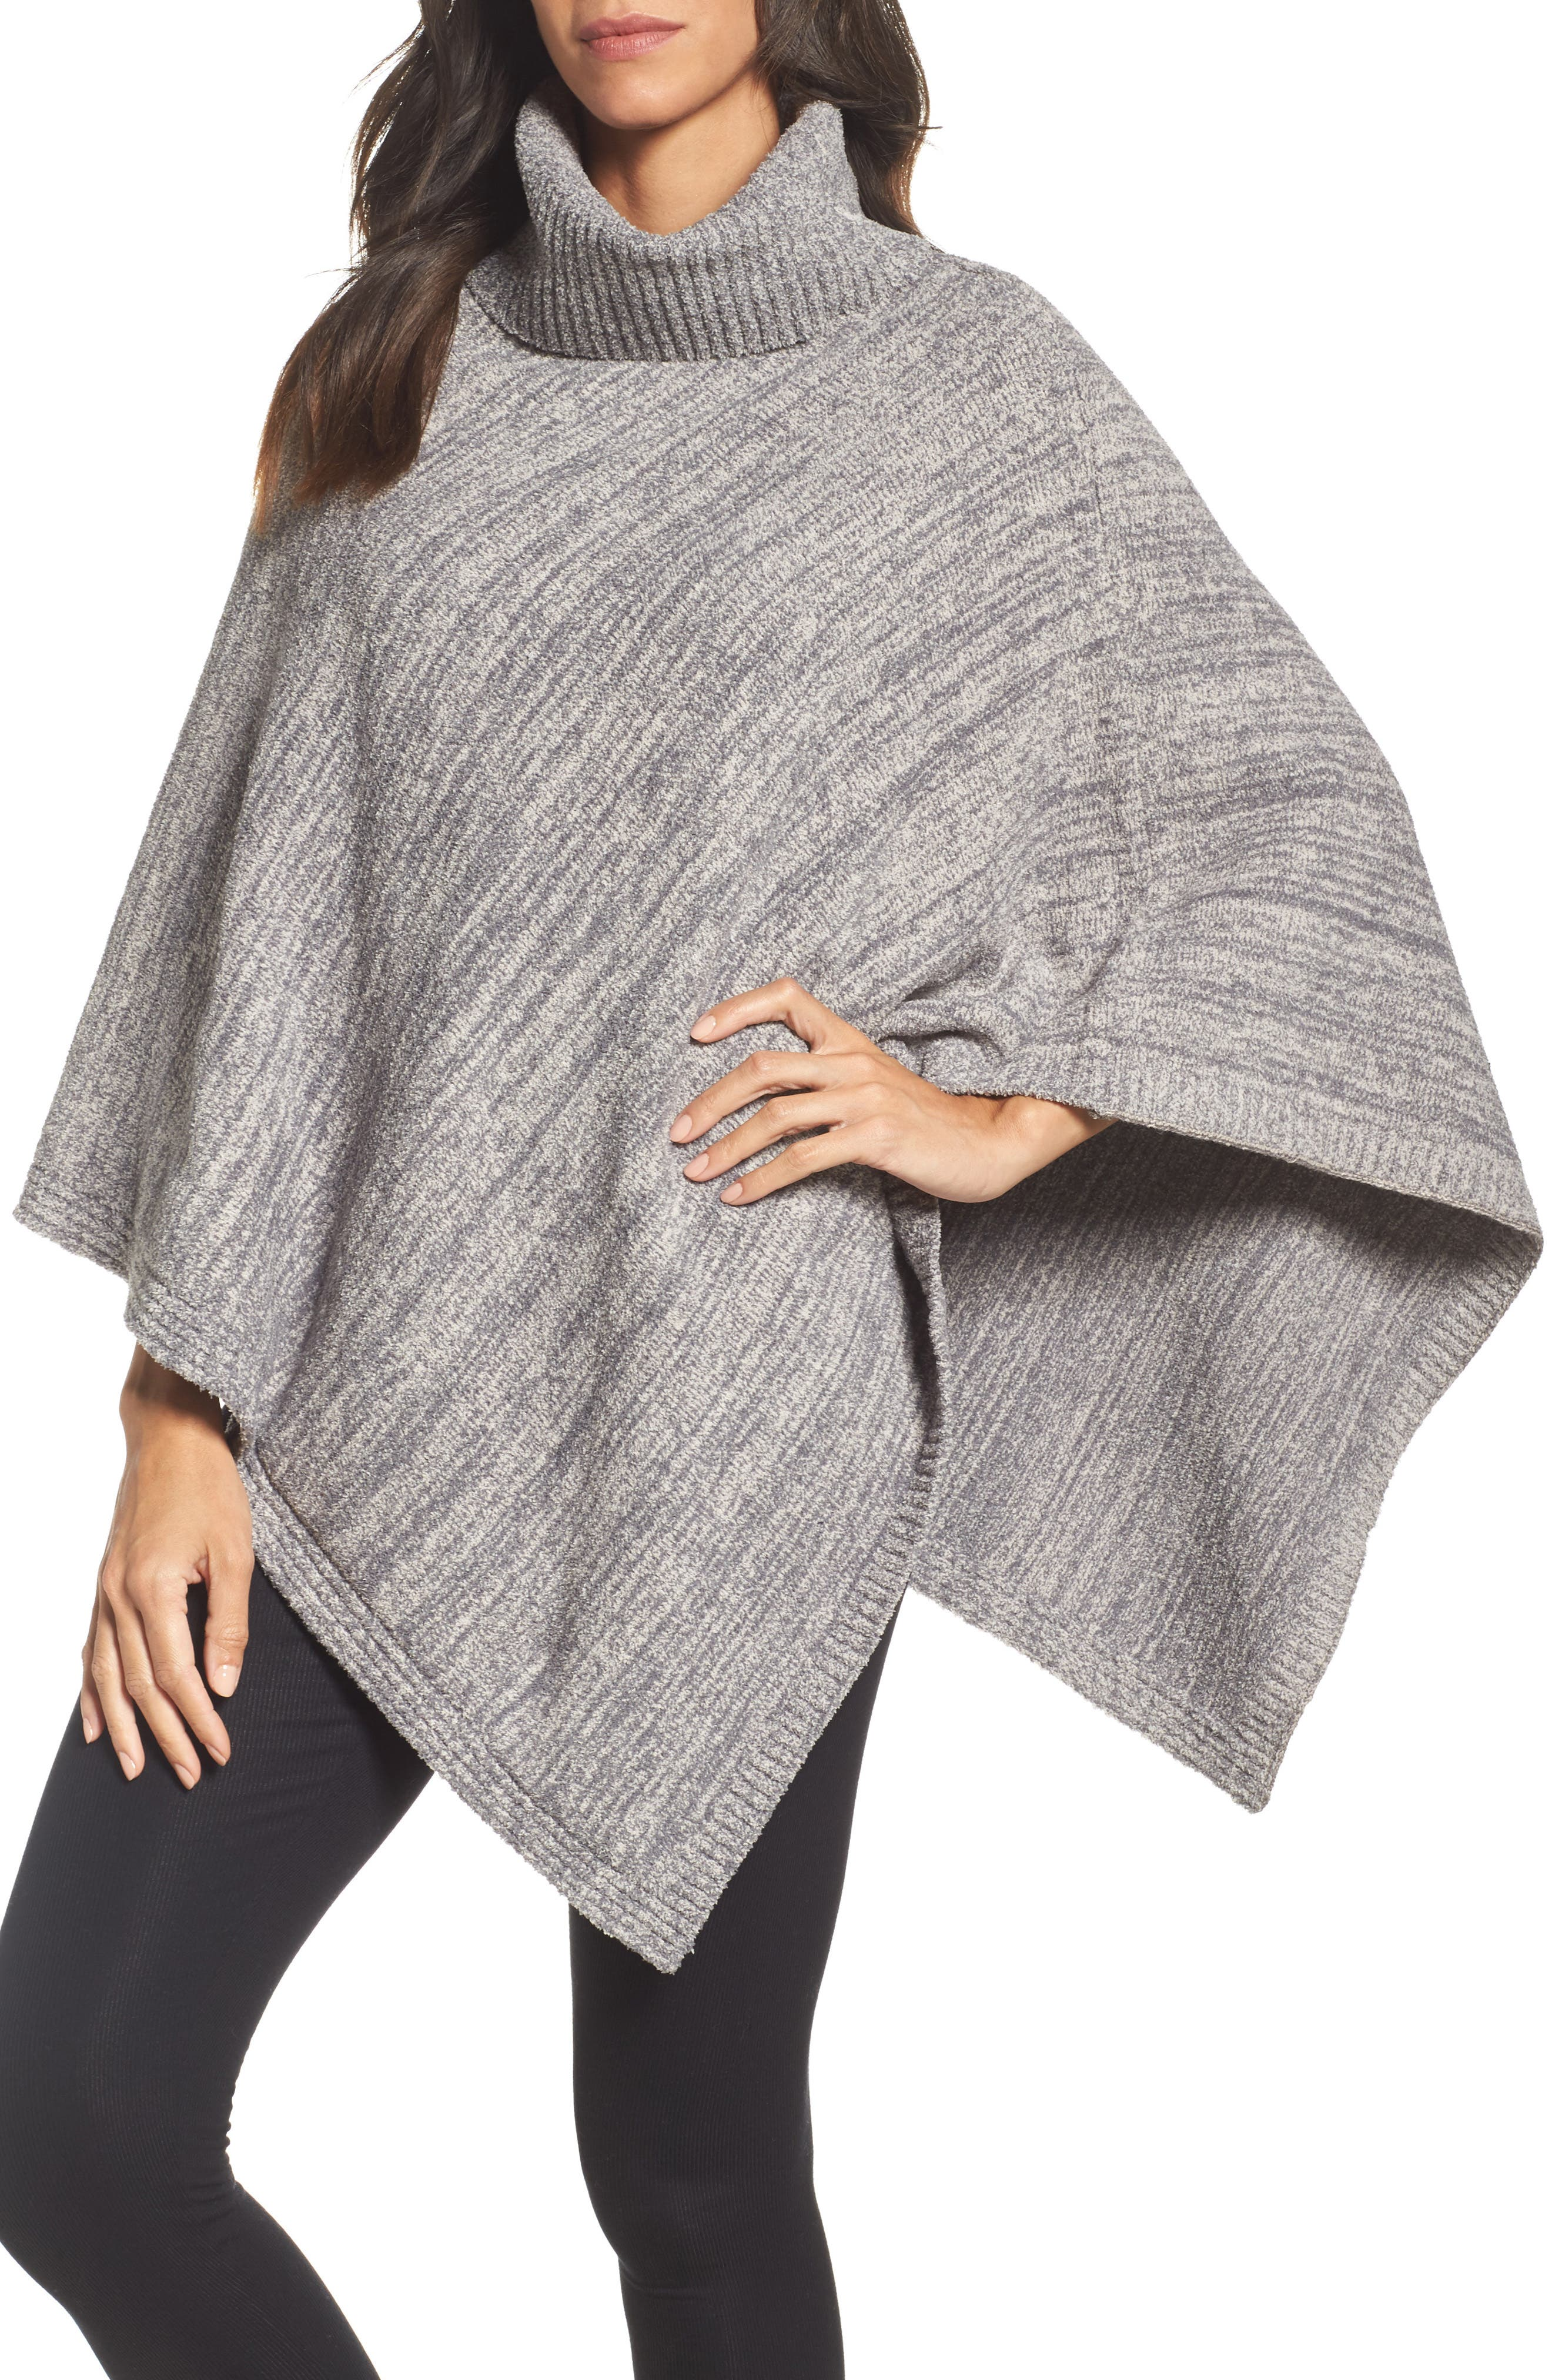 Cozychic<sup>®</sup> Point Dume Poncho,                         Main,                         color, Graphite/ Stone Heathered